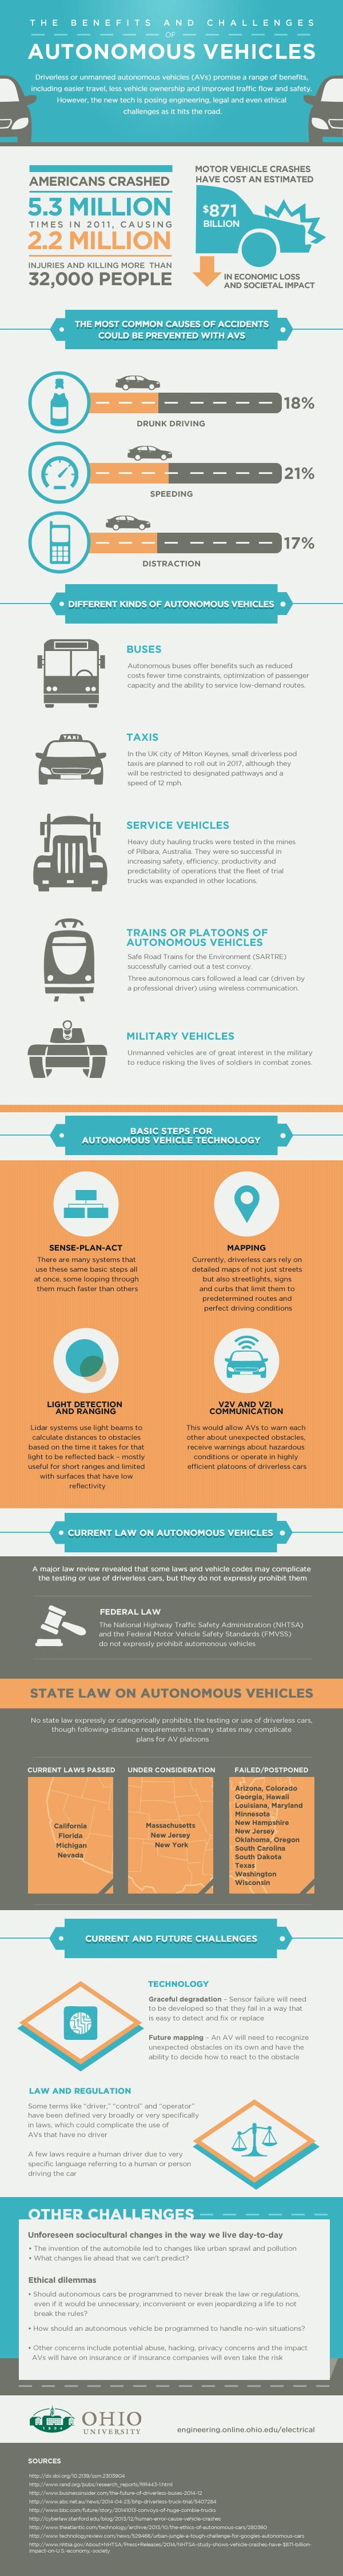 Infographic: The Benefits And Challenges Of Autonomous Vehicles | Image credit: Ohio University